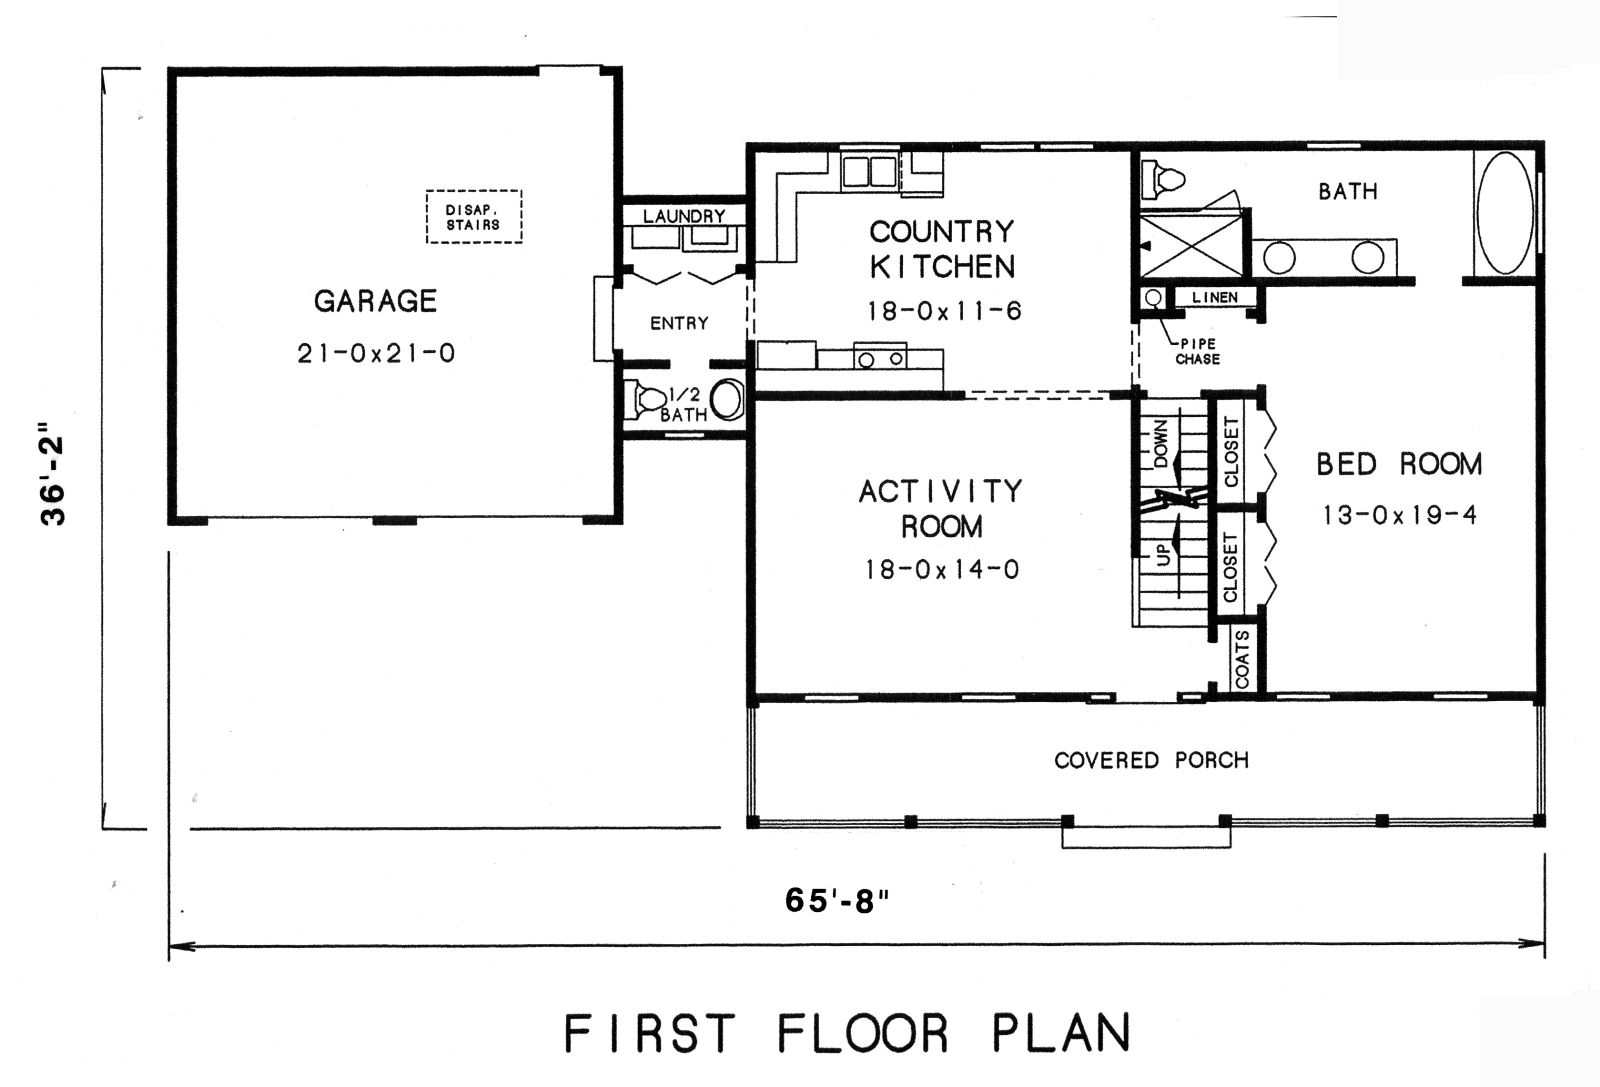 Cape cod house plans with master bedroom on first floor for Cape cod floor plans